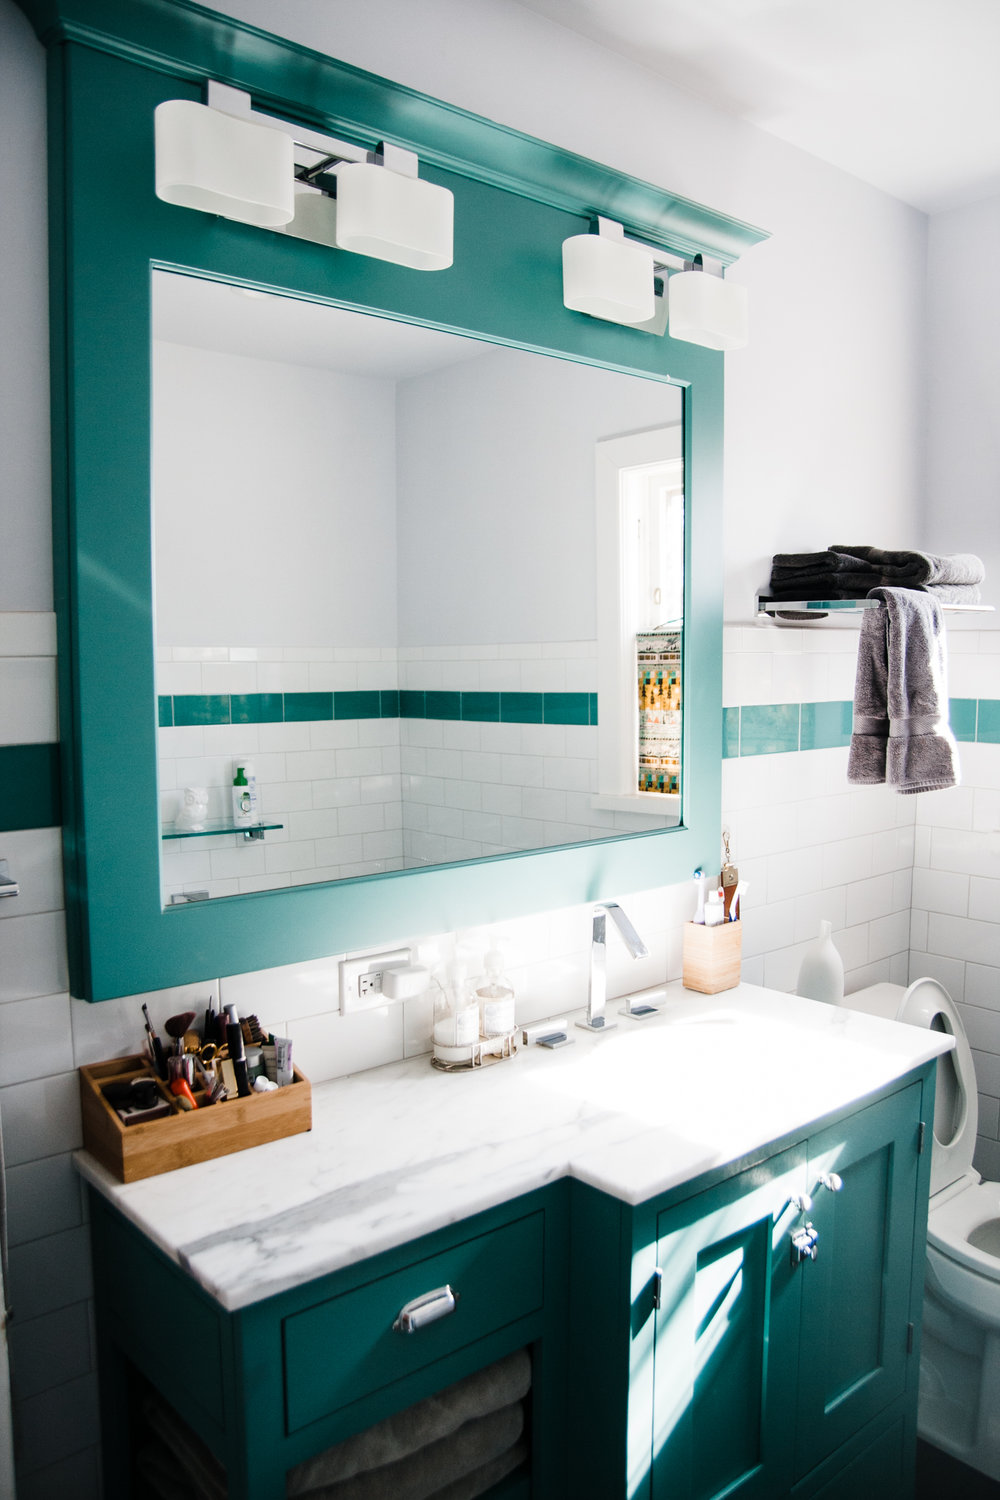 Allison's father built the custom vanity as well. We love the green throughout the space.